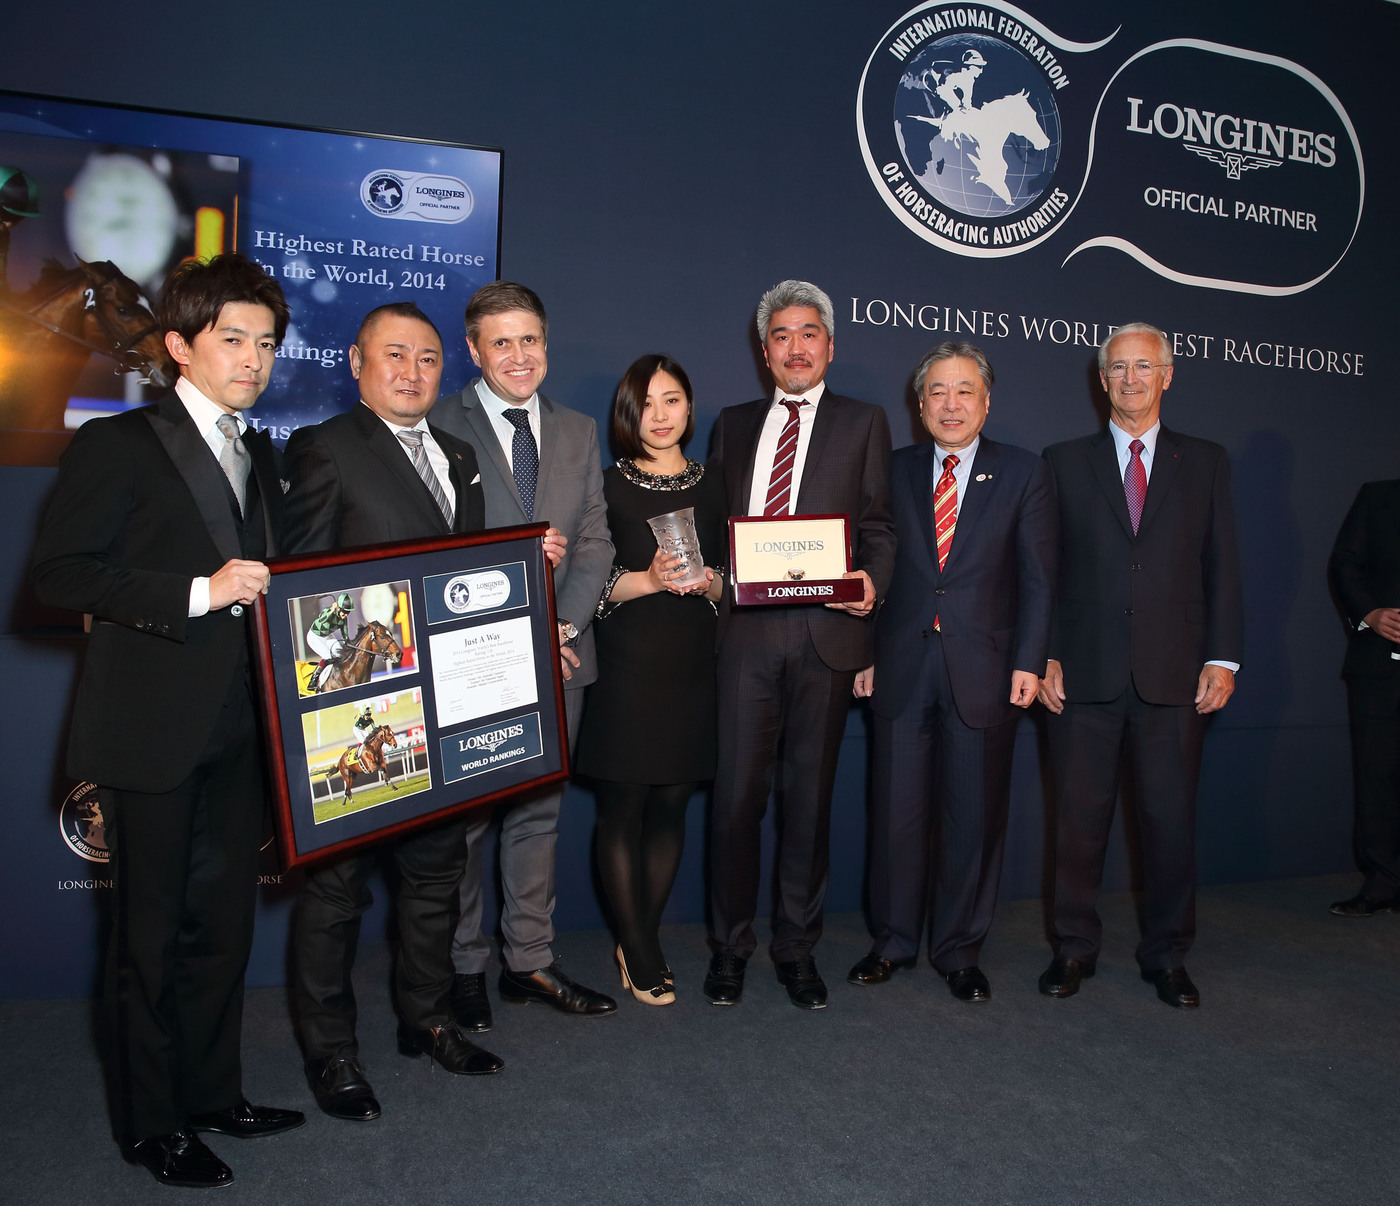 Longines Flat Racing Event: Just A Way honoured as the 2014 Longines World's Best Racehorse  2